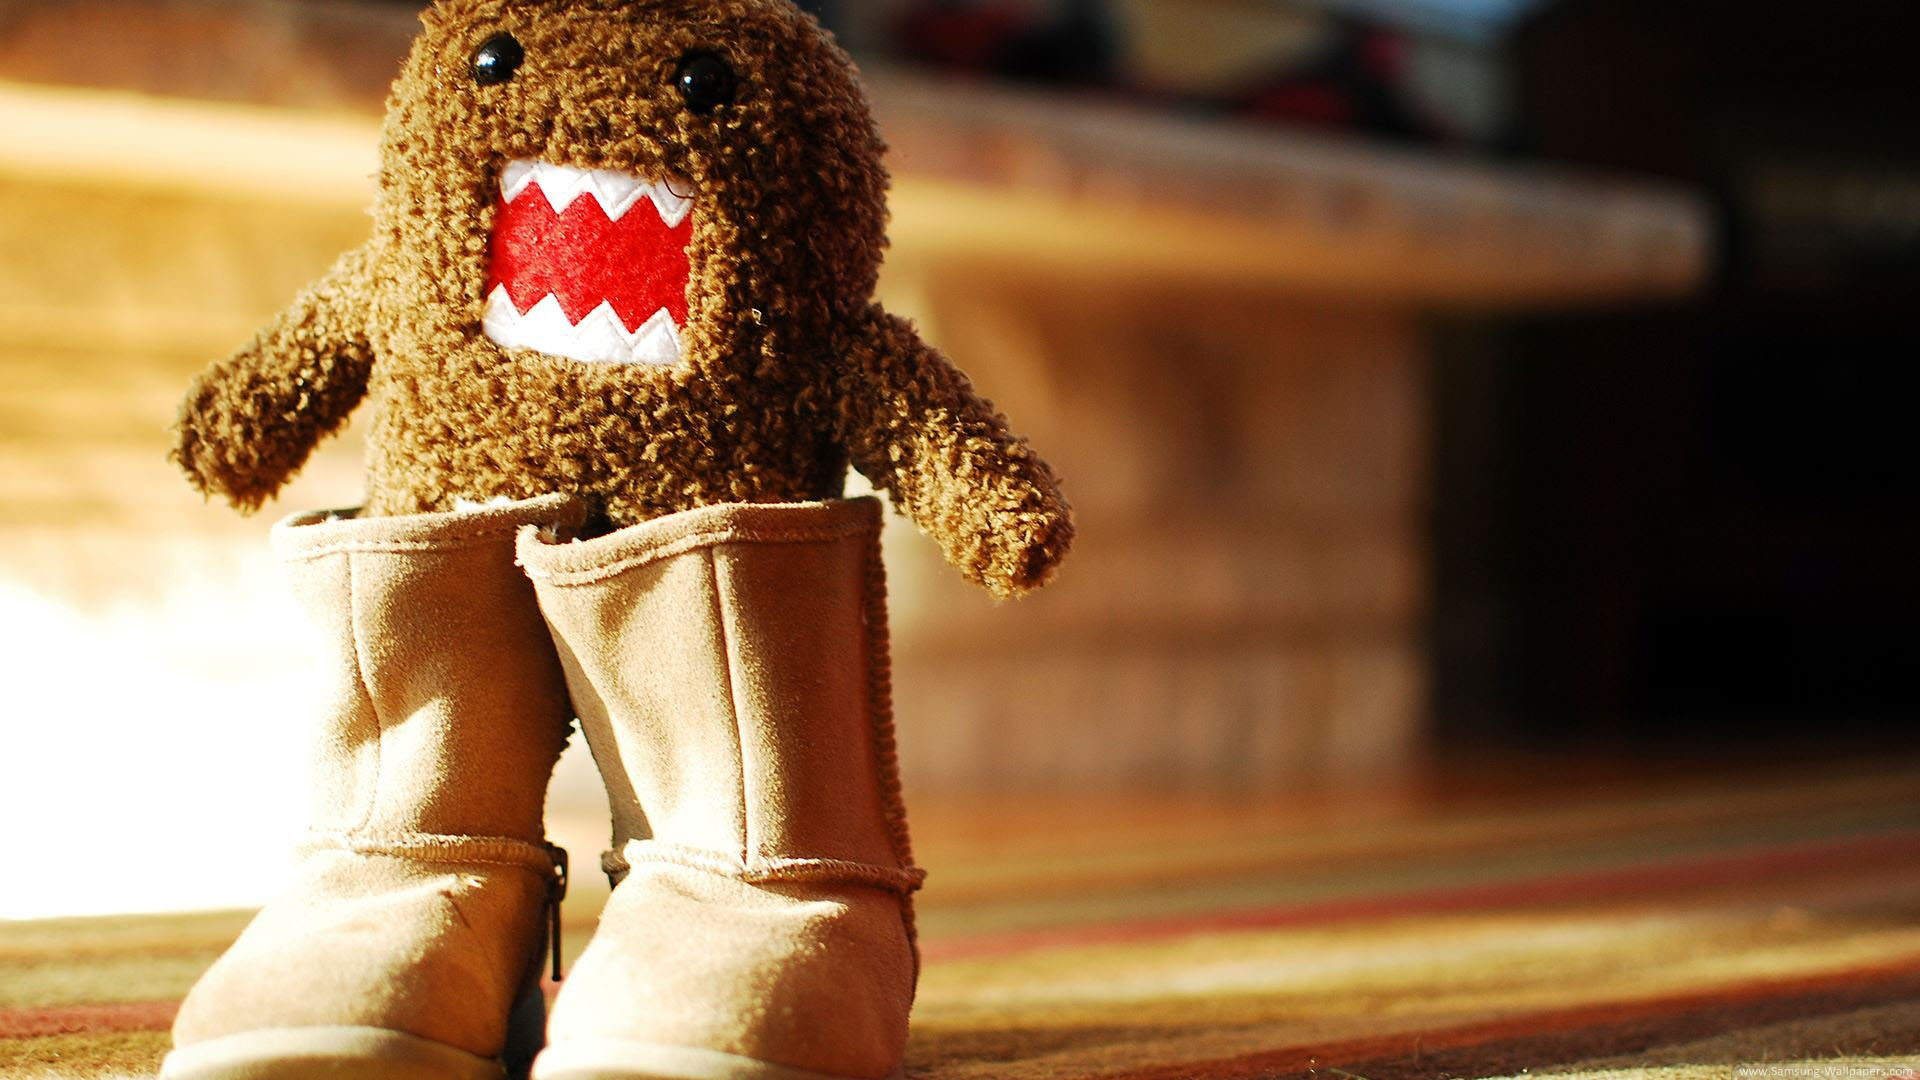 1920x1080 Cute Domo Wallpaper